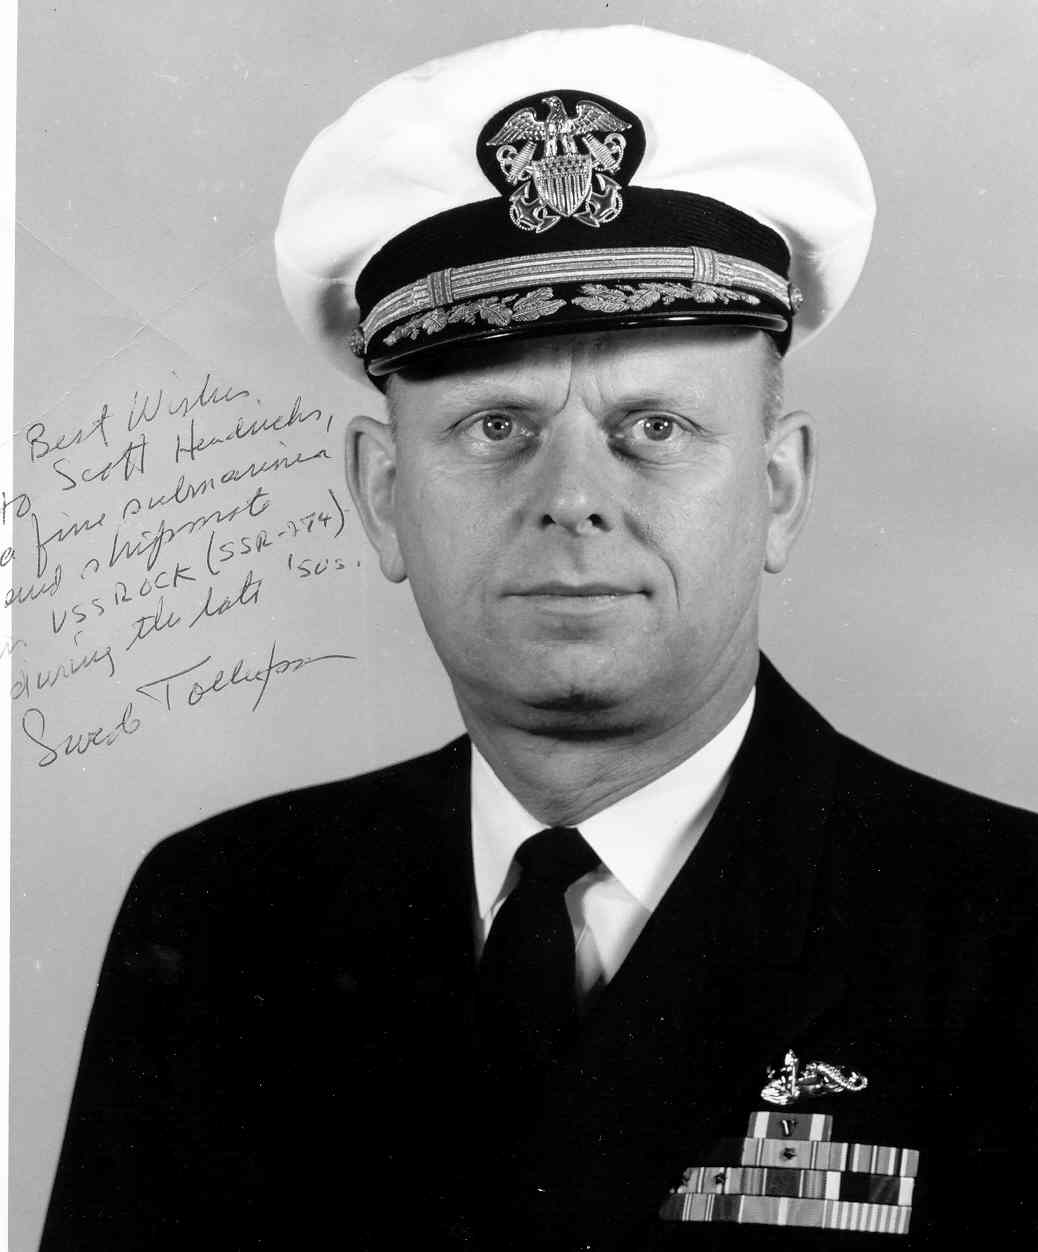 Capt. Leif (Swede)Tollefson